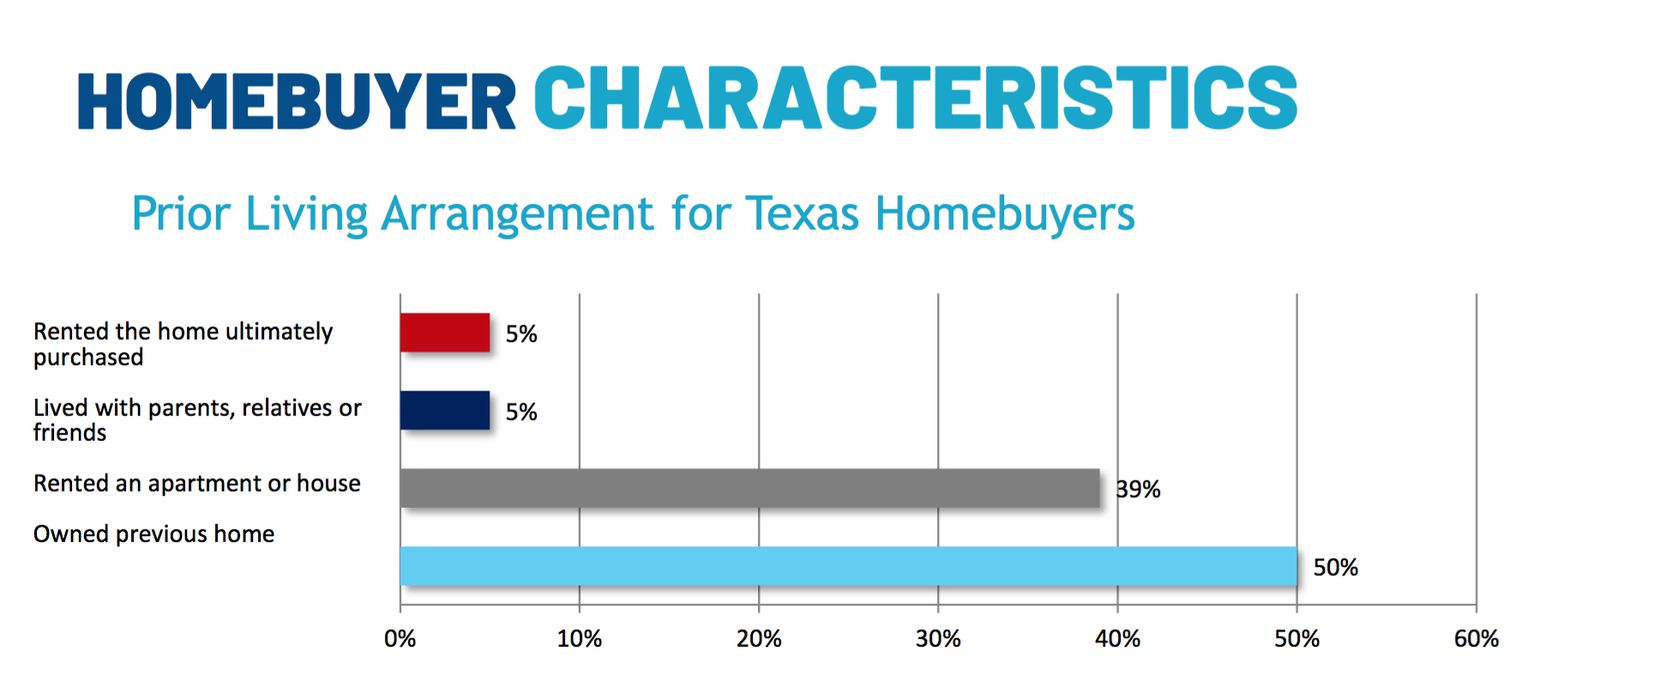 About 40% of buyers were previously renting.